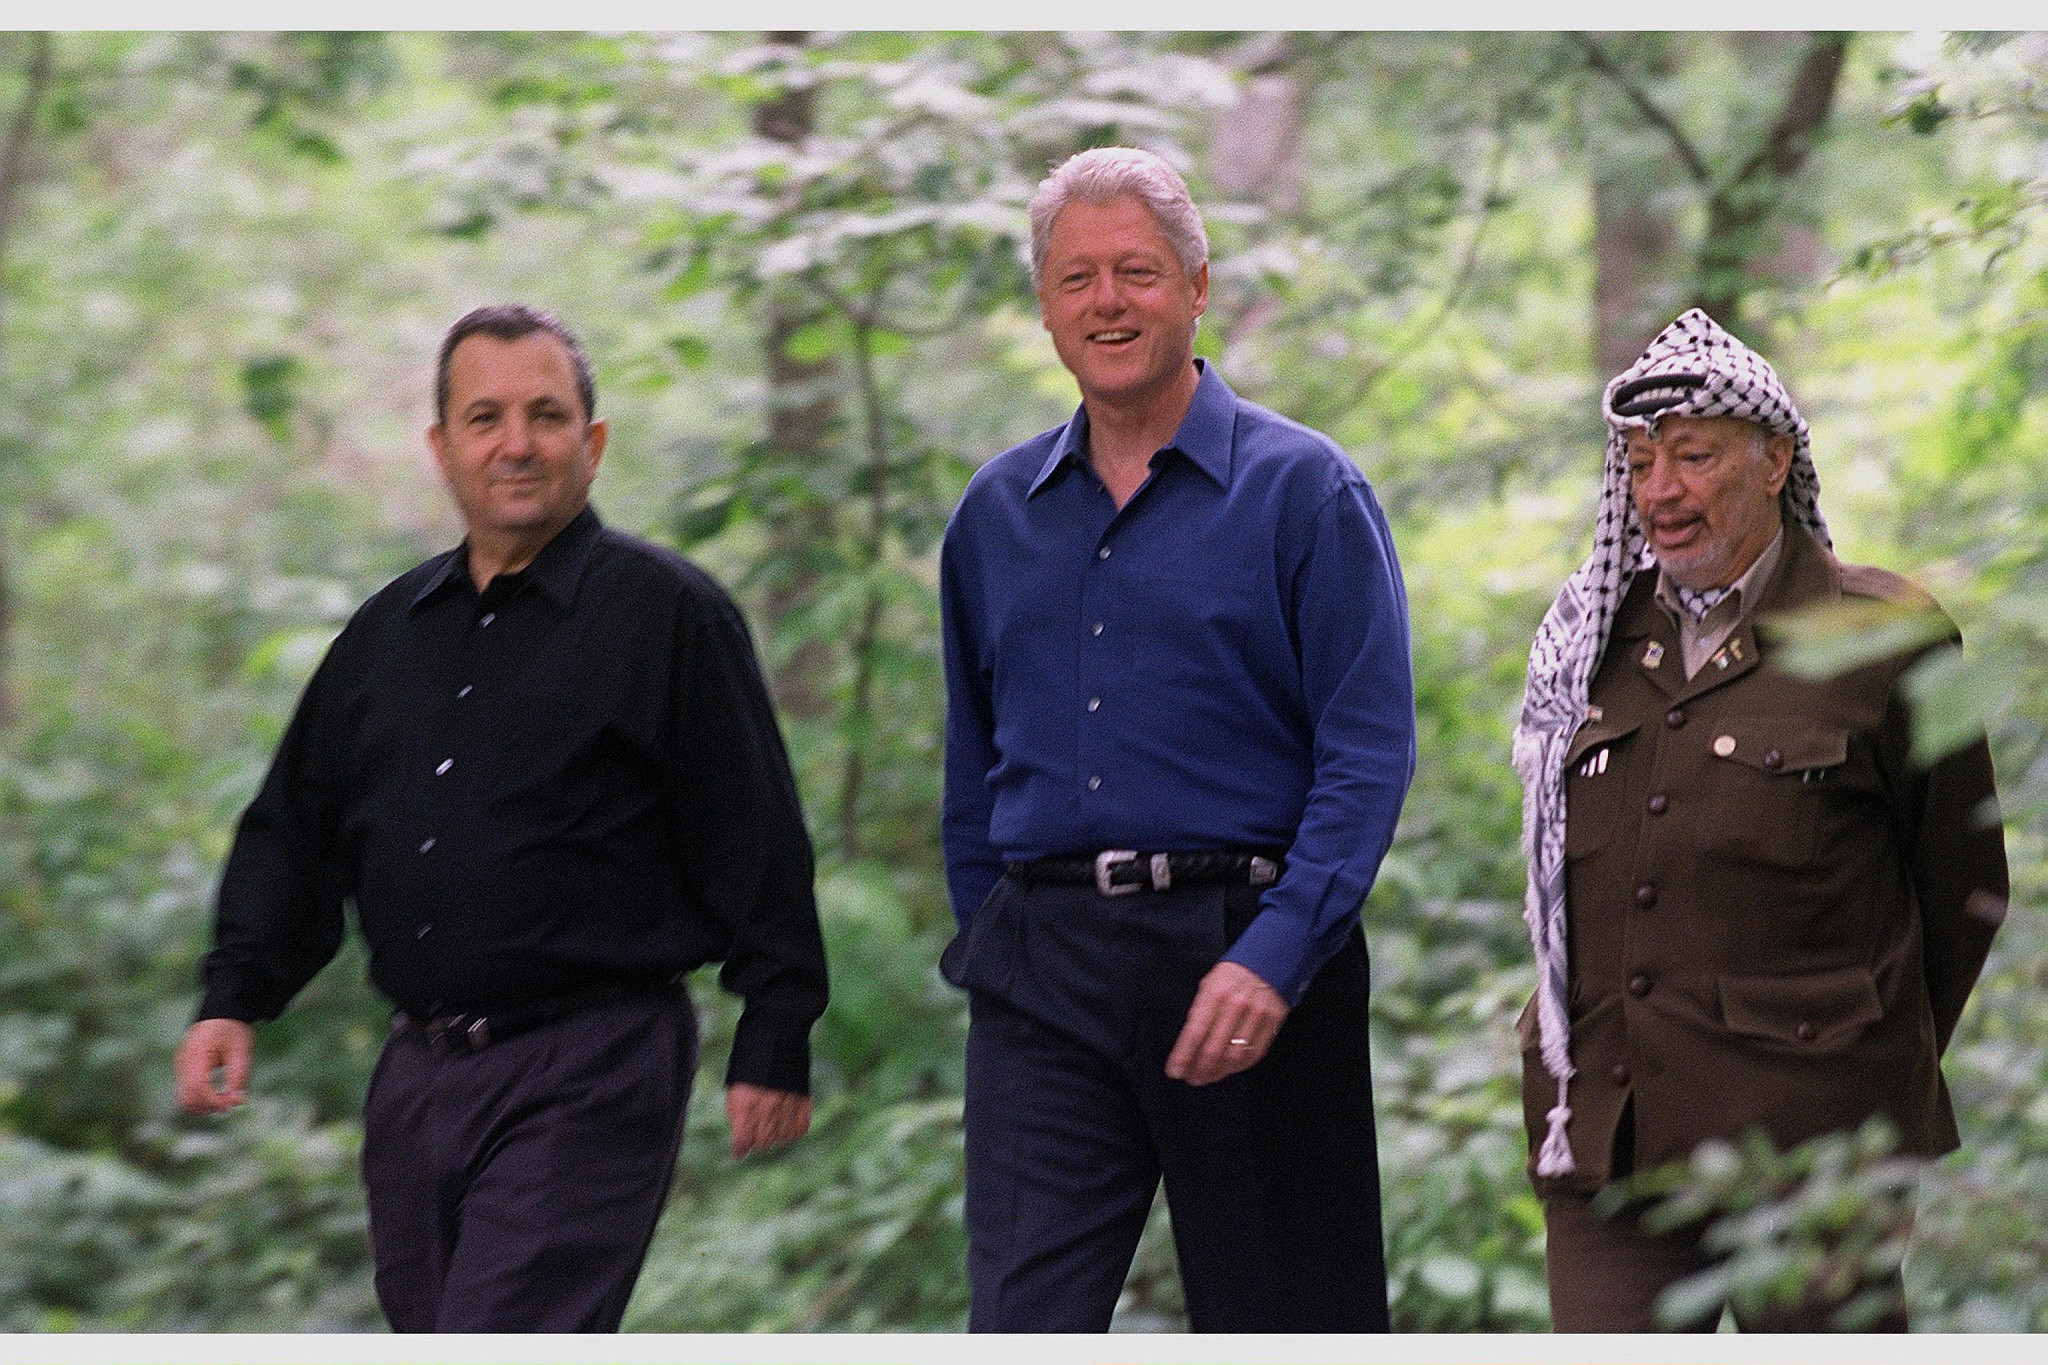 Israeli Prime Minister Ehud Barak, U.S. President Bill Clinton and PLO Chairman Yasser Arafat at the opening of the Camp David Summit in the United States, July 11, 2020. (Avi Ohayon/GPO)